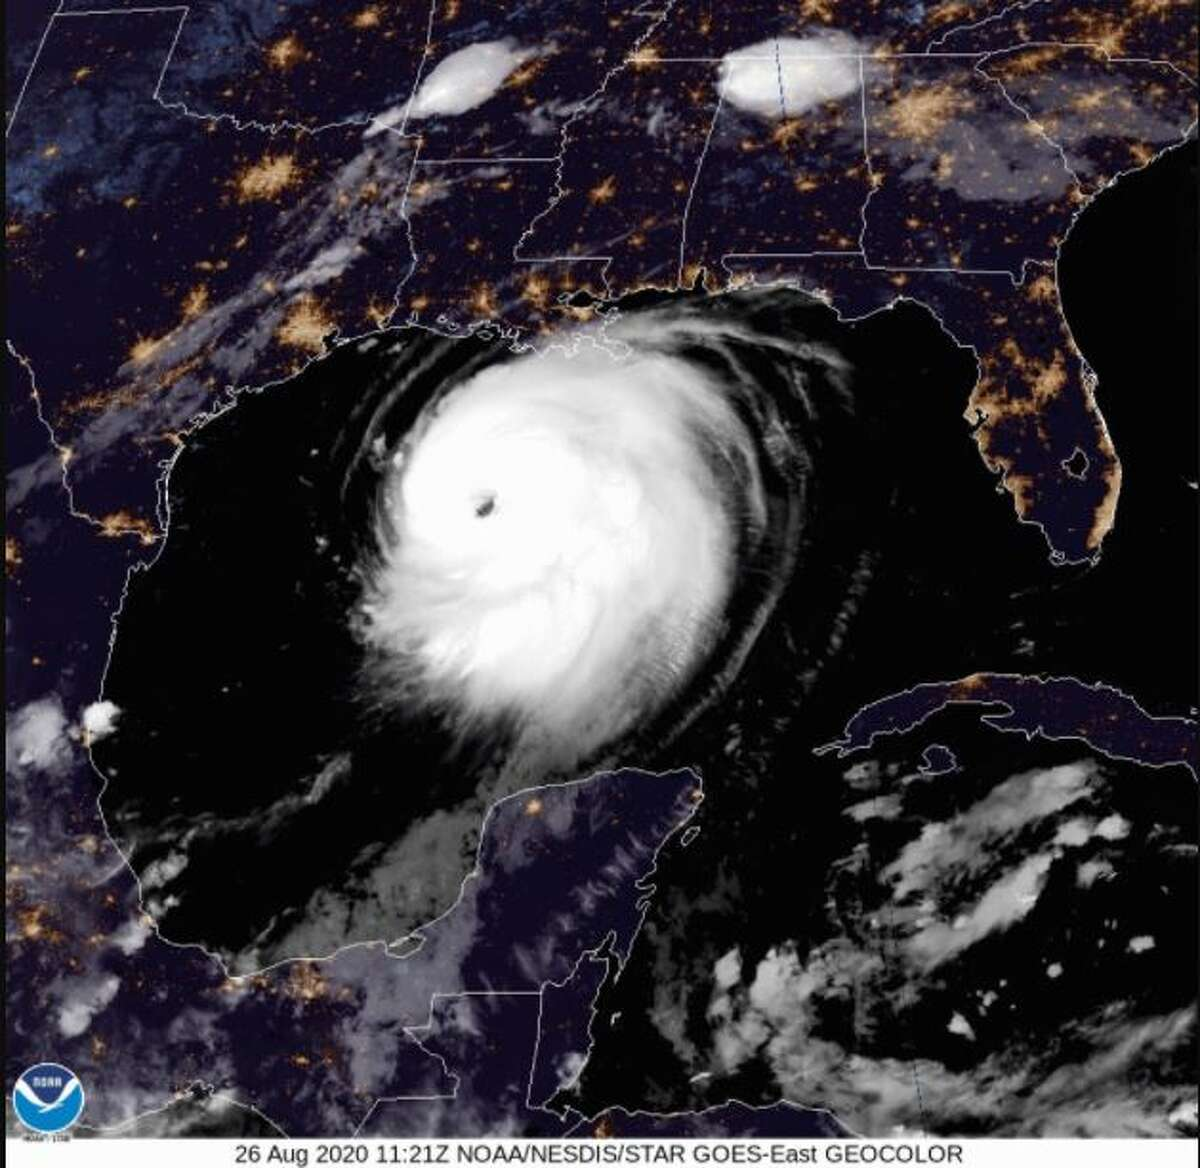 Houston police chief Art Acevedo didn't mince words when he sent a stern warning about looting ahead of Hurricane Laura's landfall. NWS Image: The eye of Hurricane Laura, August 26, 2020.